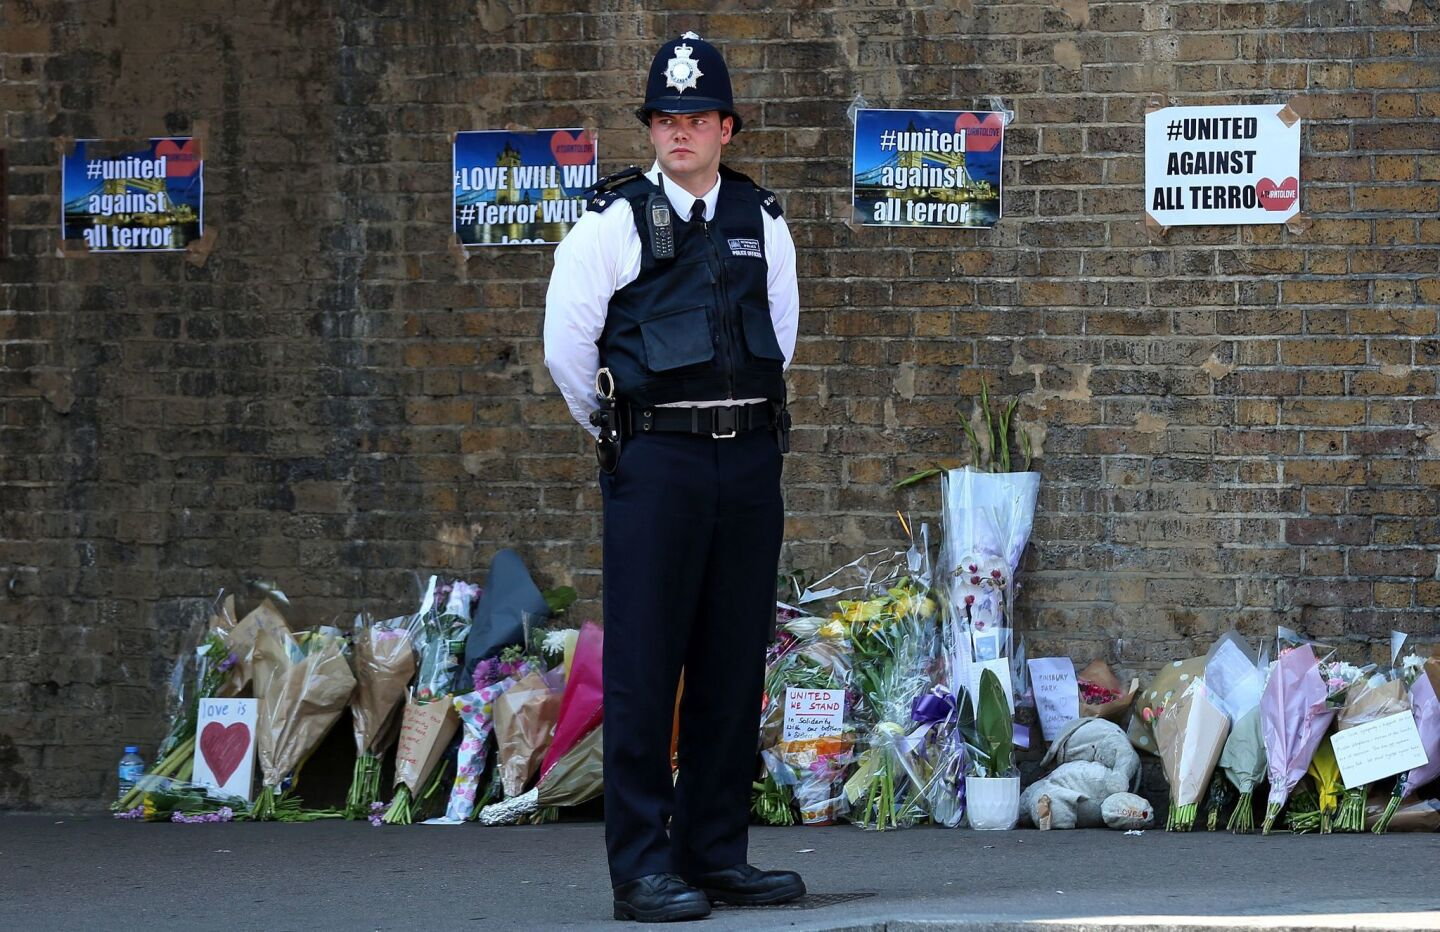 A police officer stands on duty near tributes and flowers at a police cordon in the Finsbury Park area of north London following a vehicle attack on pedestrians. One person died and 10 people were injured when a van drove into a crowd of Muslim worshippers near a mosque in London in the early hours of Monday.